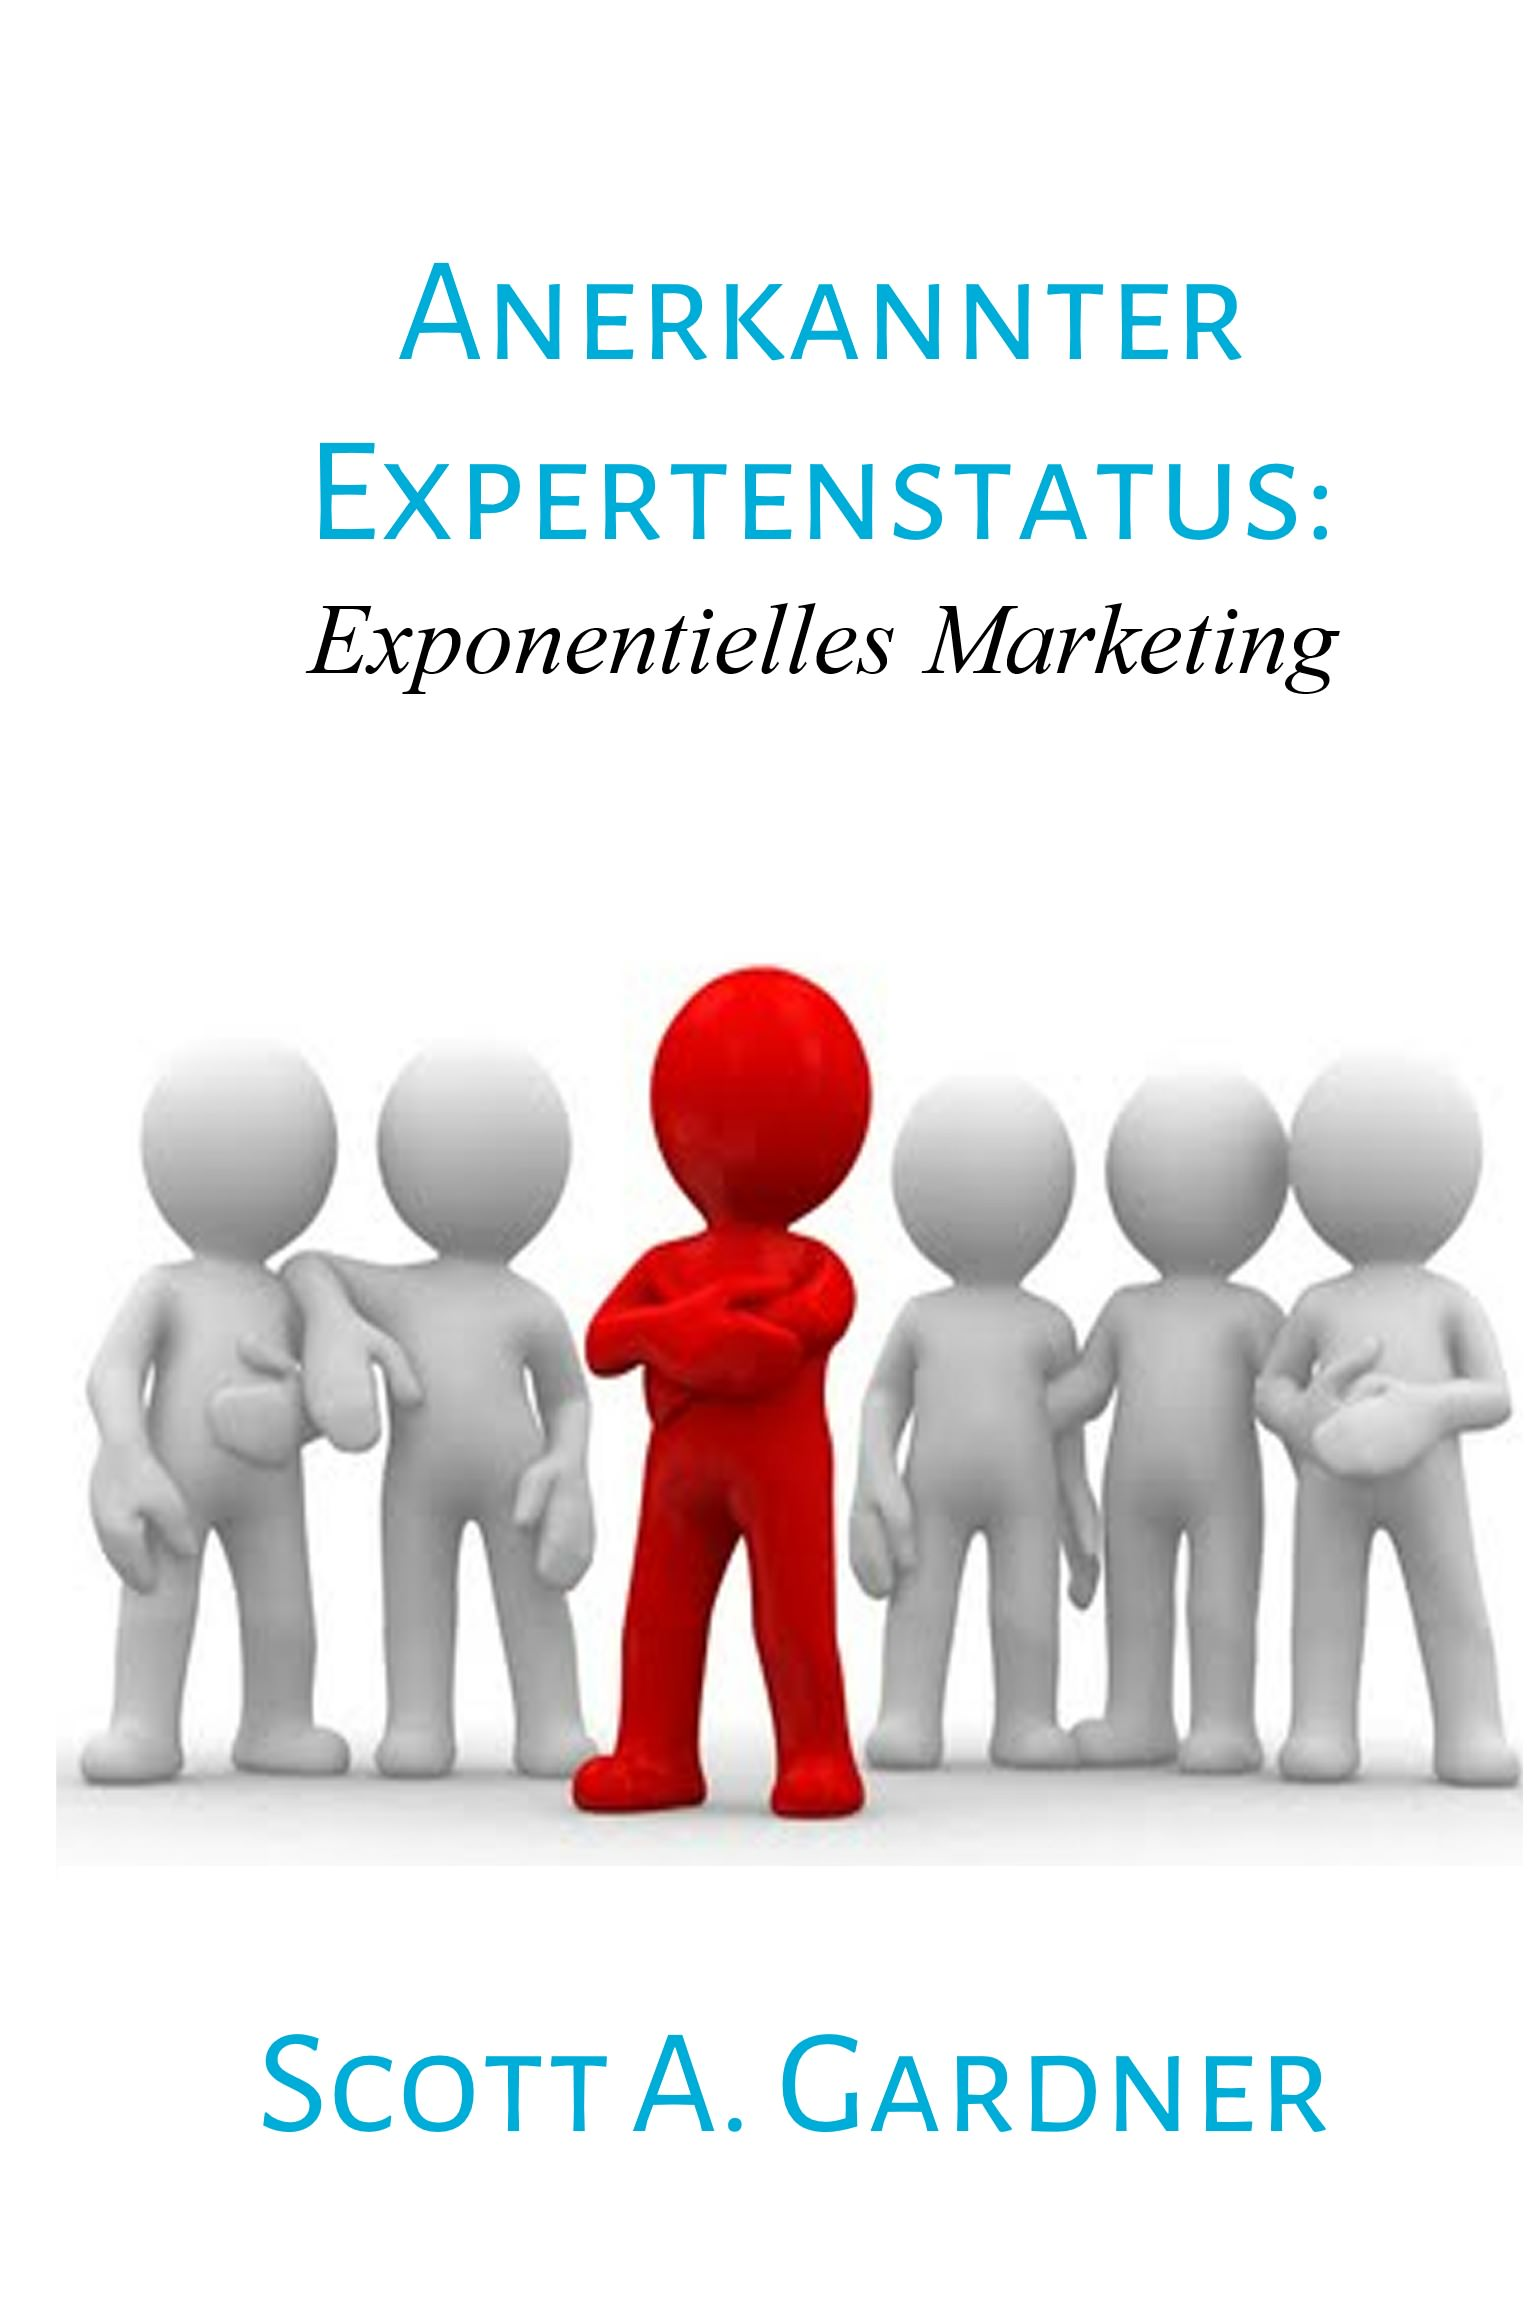 Recognized Expert Status (German) Image